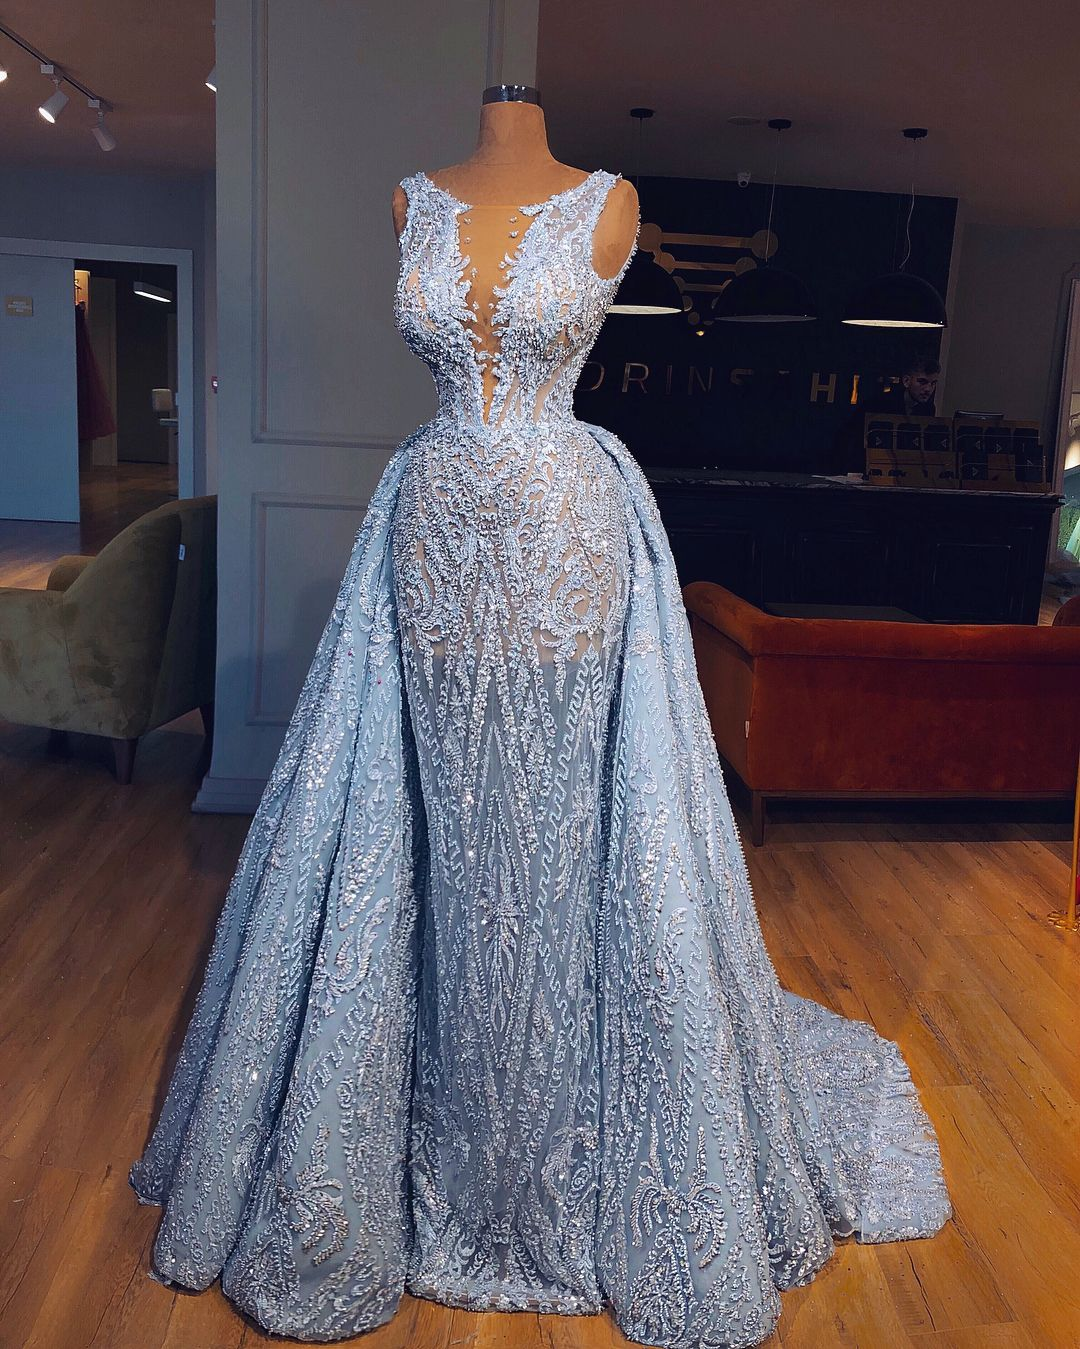 Beautiful Valdrin Sahiti Gown View More Beautiful Gowns By Browsing Pageant Planet S Dress Gallery Prom Pageant Promdre Evening Dresses Dresses Ball Gowns,Formal Wedding Dresses For Men